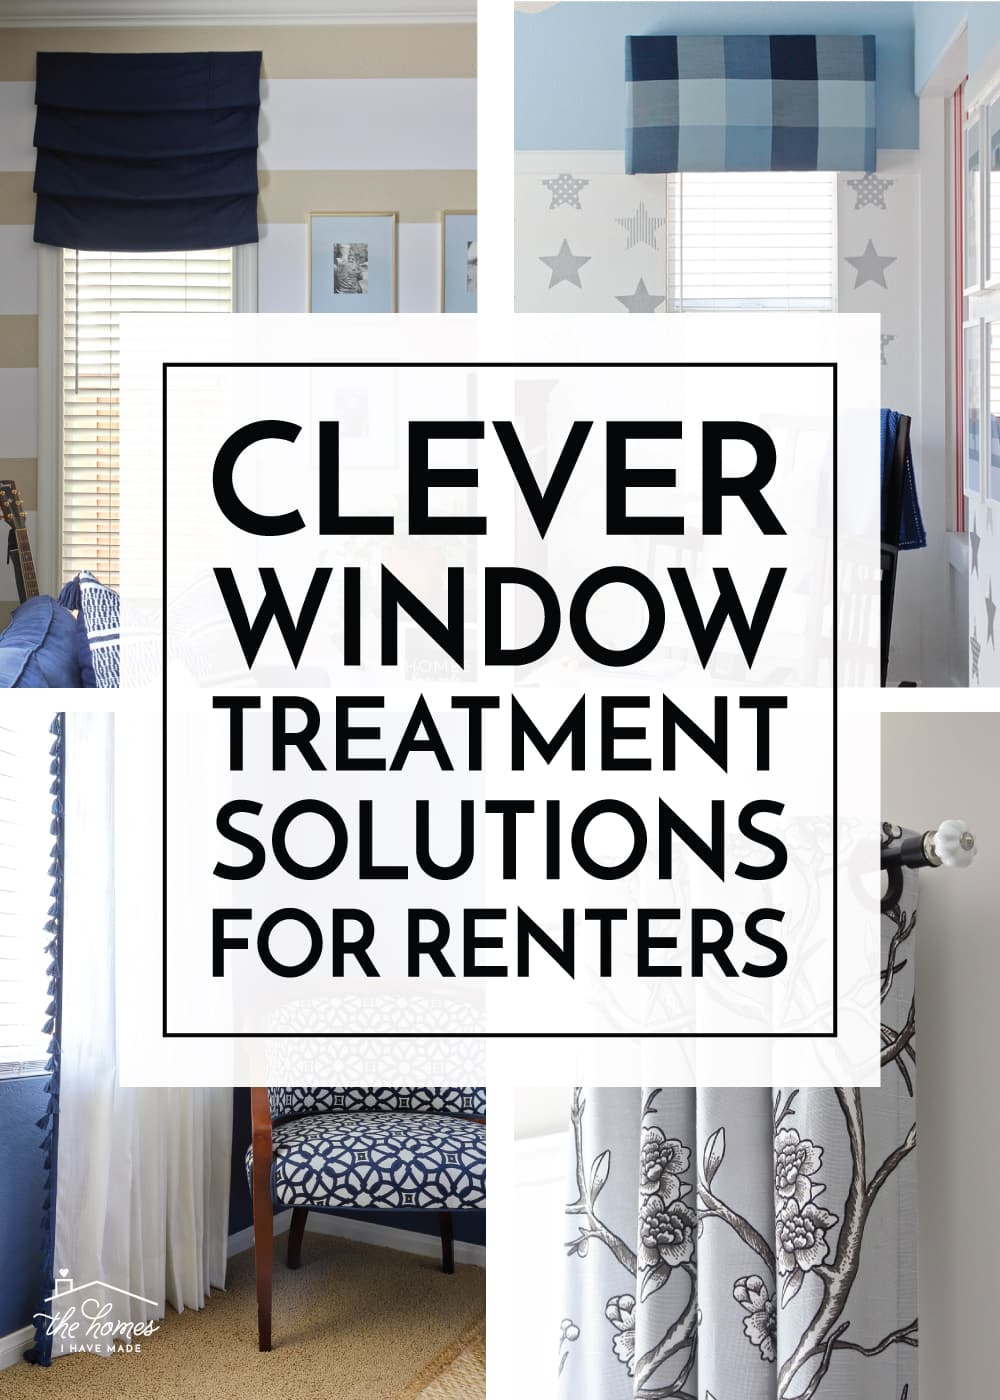 Window Treatment Solutions for Renters